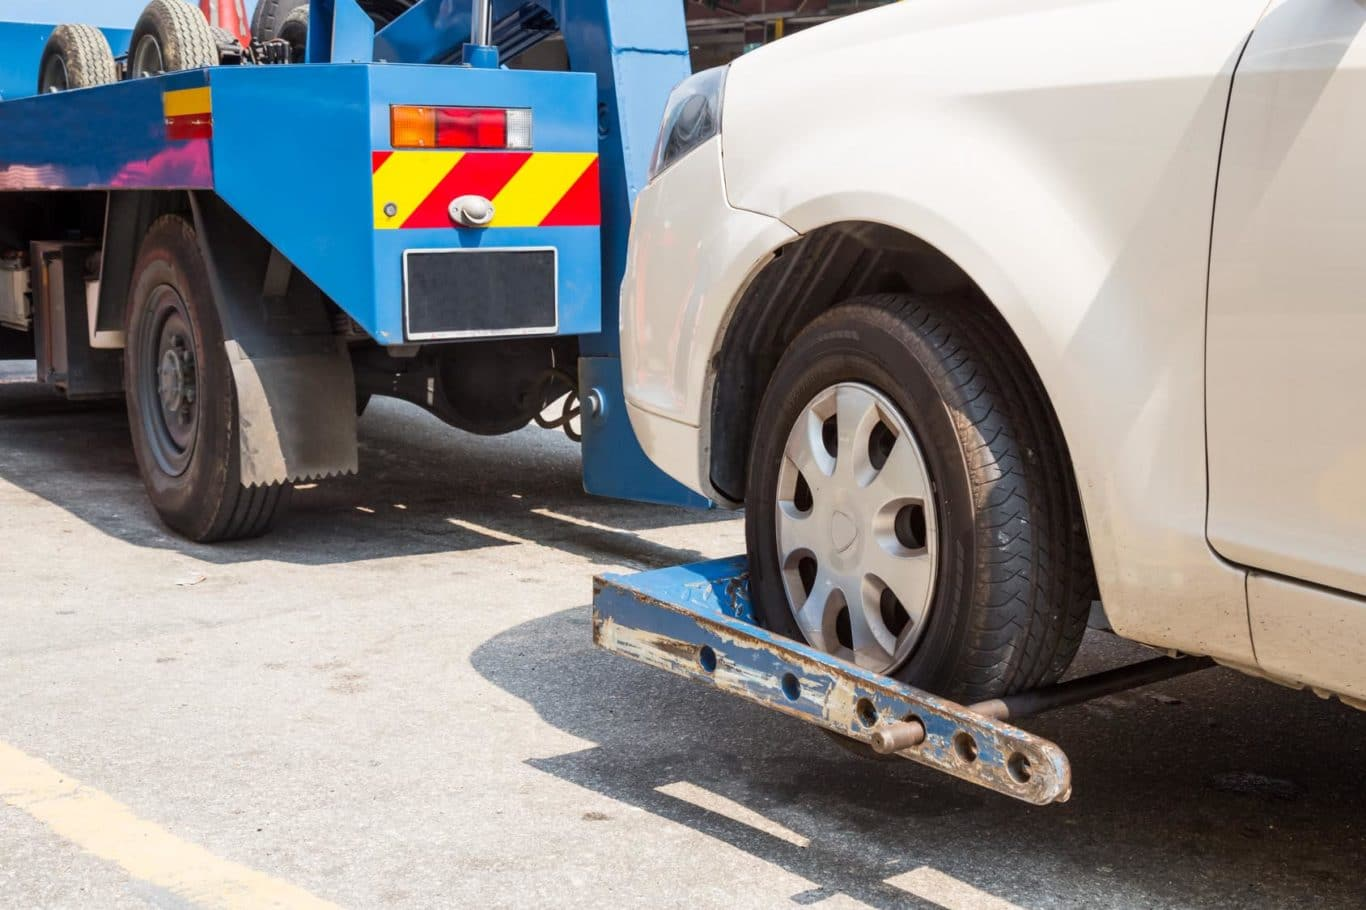 Dublin 17 (D17) Dublin, Fingal expert Car Towing services